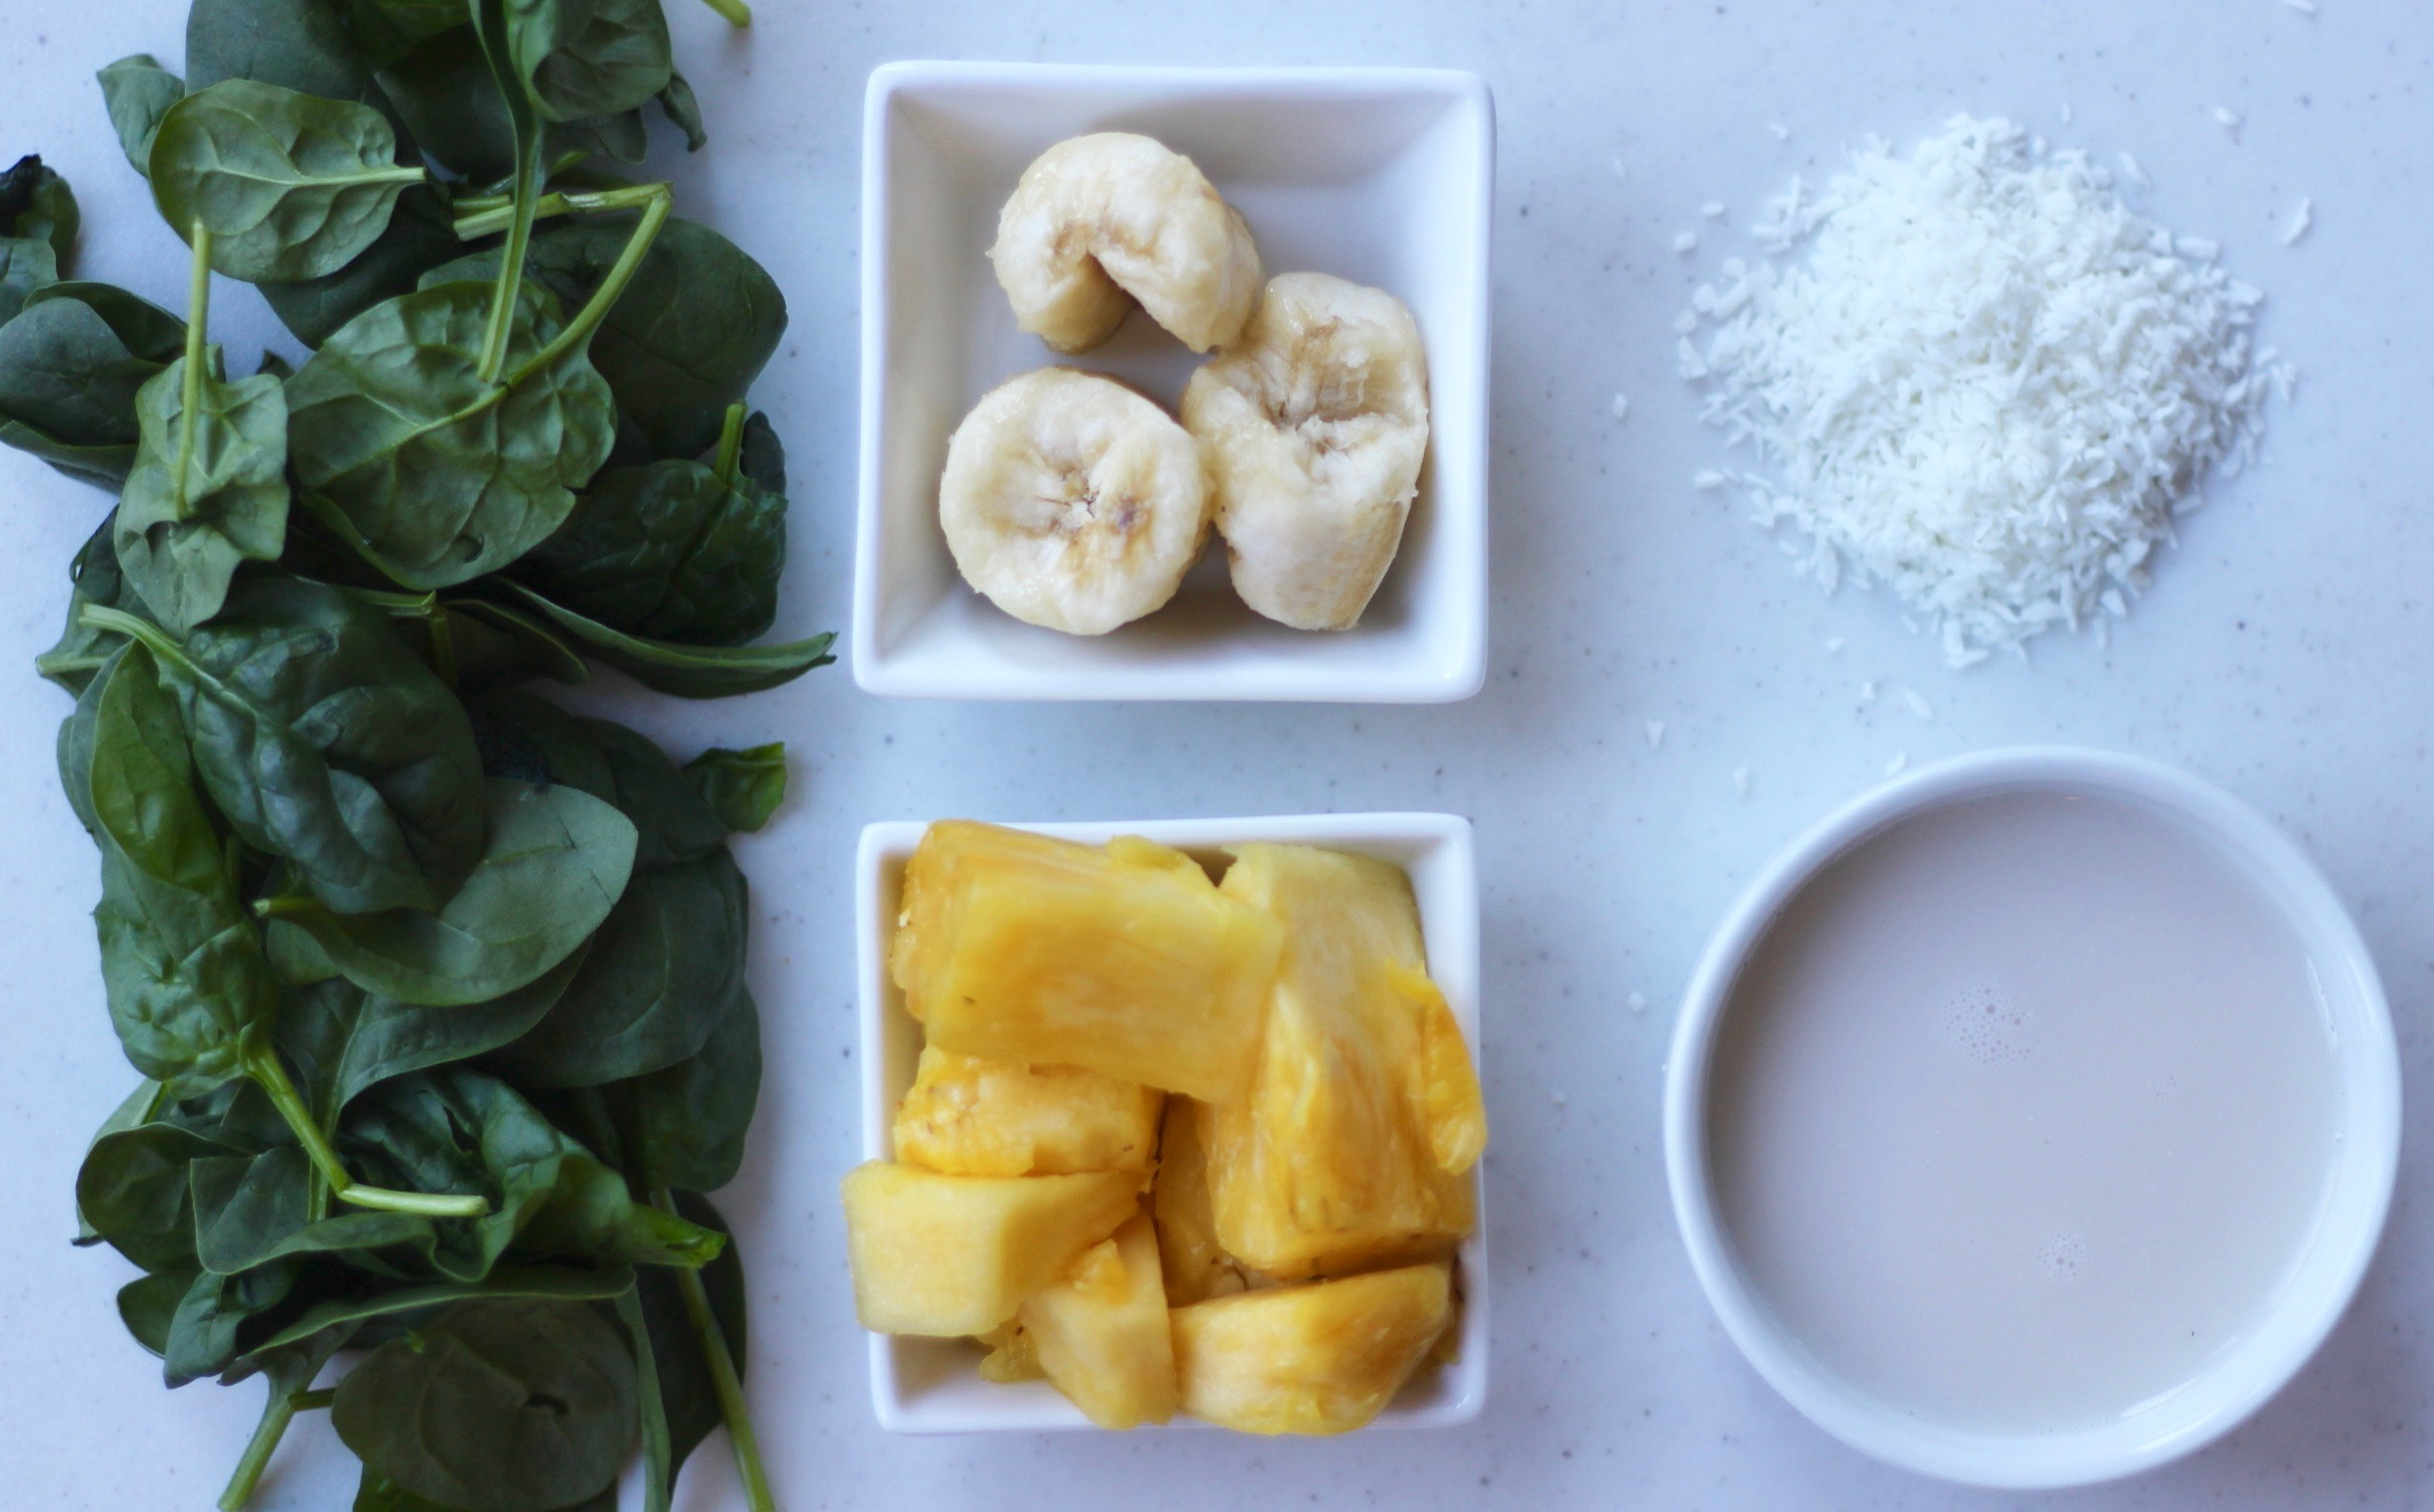 ingredients-pineapple-spinach-coconut-banana-pina-colada-green-smoothie.jpg